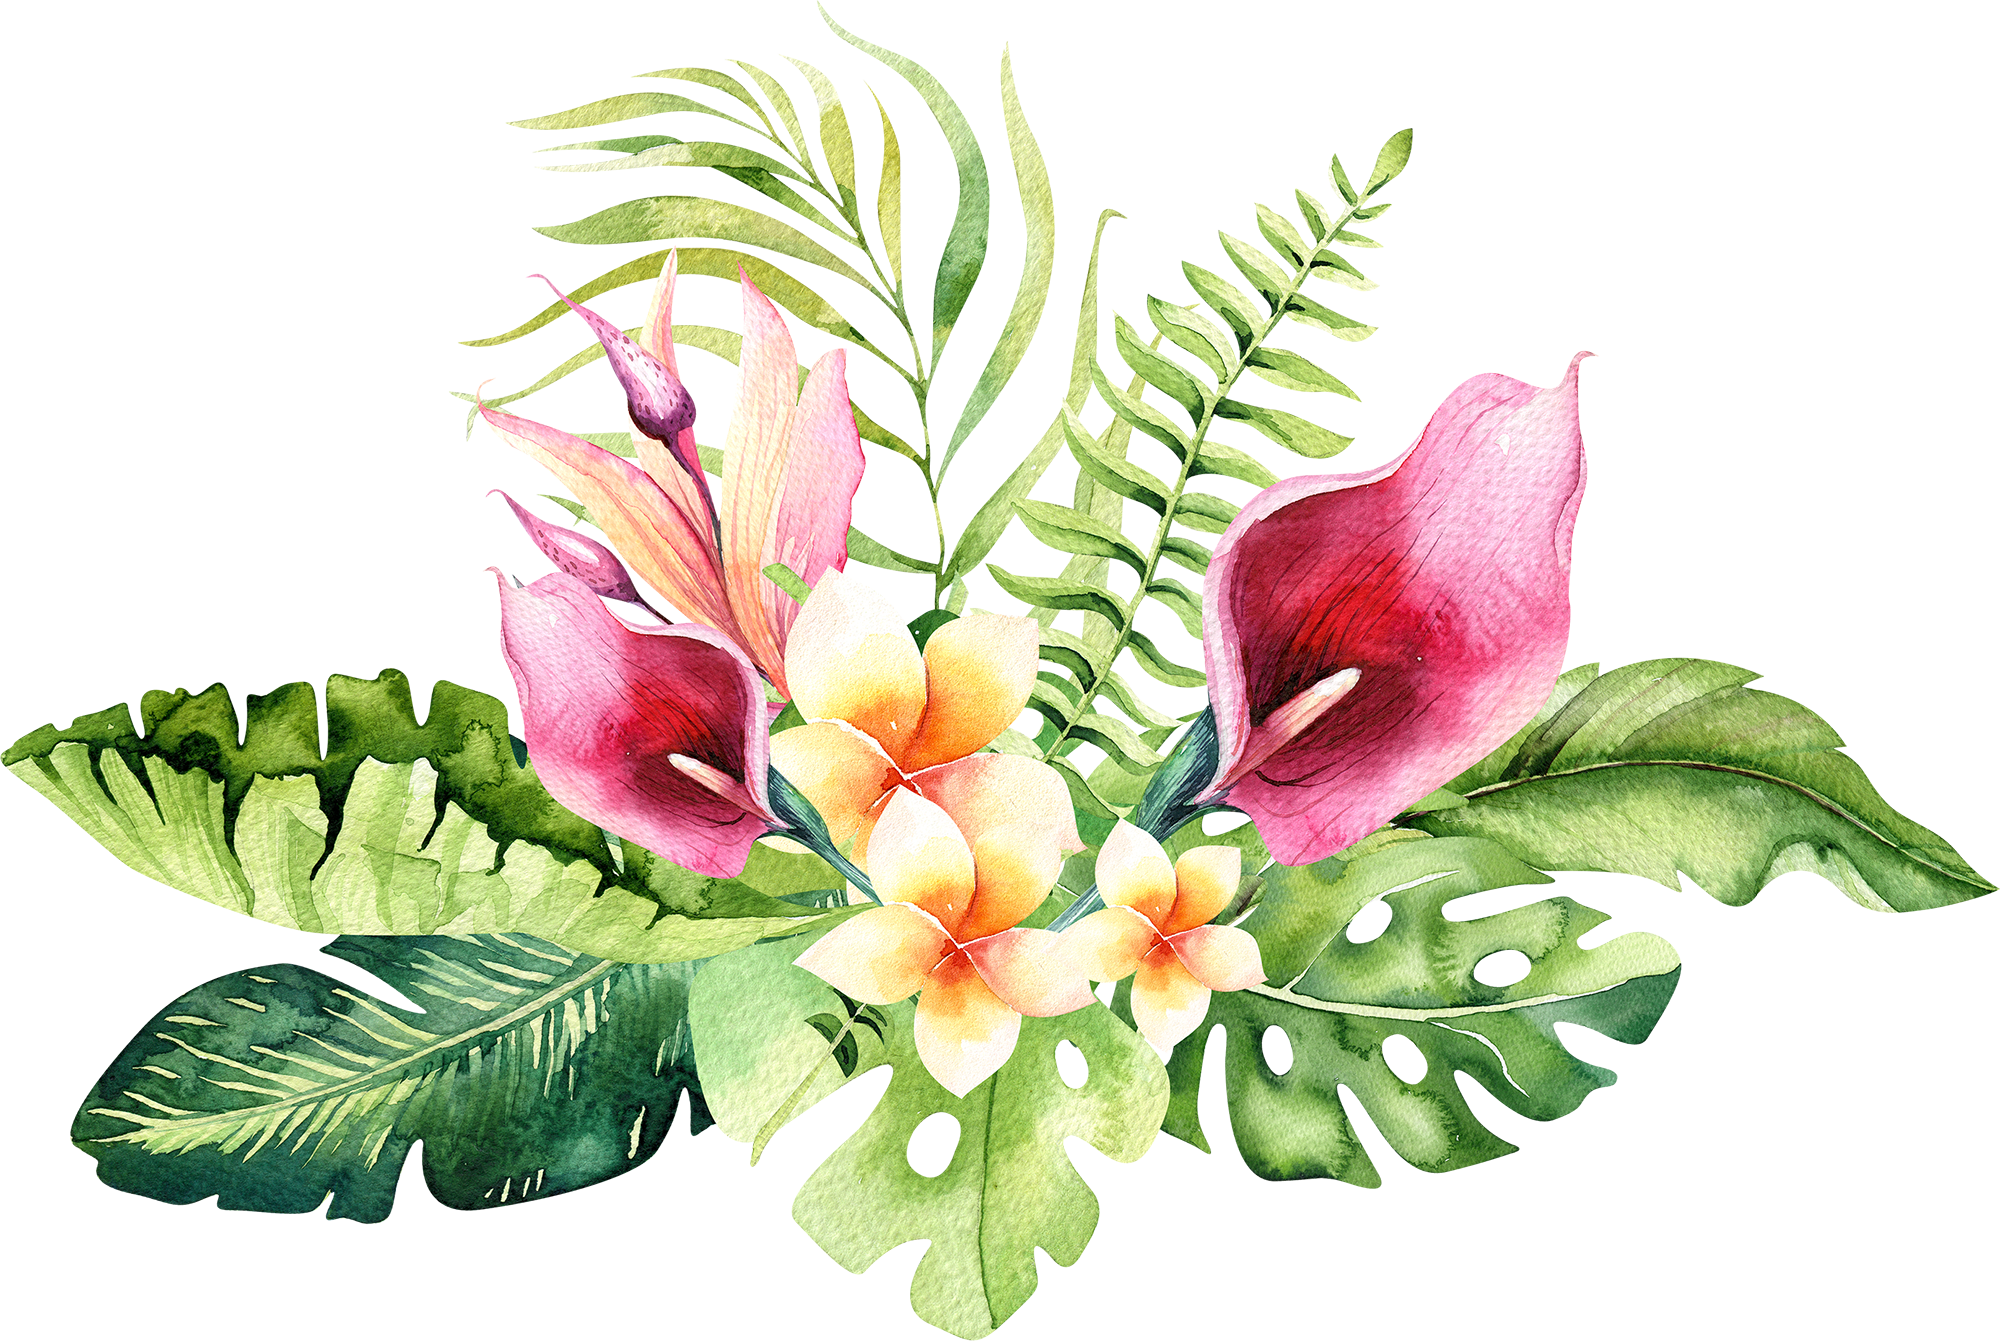 Tropical flower watercolor png. Download hand drawn image